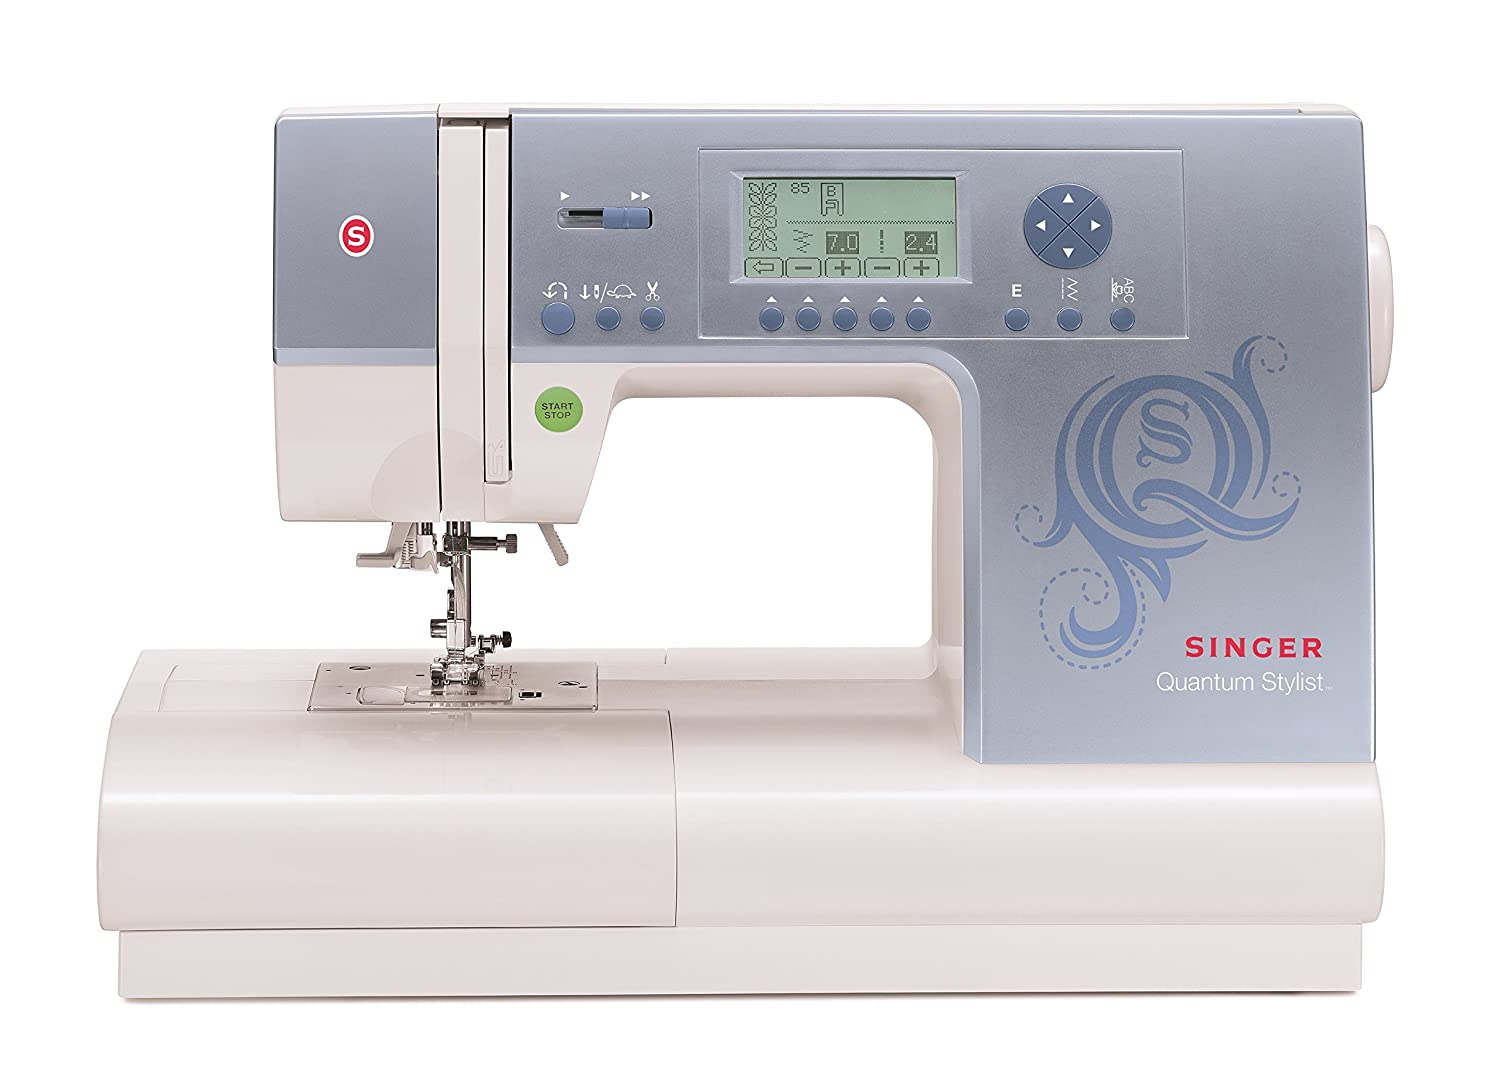 Singer Quantum Stylist 9980 Computerized Portable Sewing Pedal Wiring Diagram Kenmore Machine With 820 Stitches Electronic Auto Pilot Mode Extension Table And Bonus